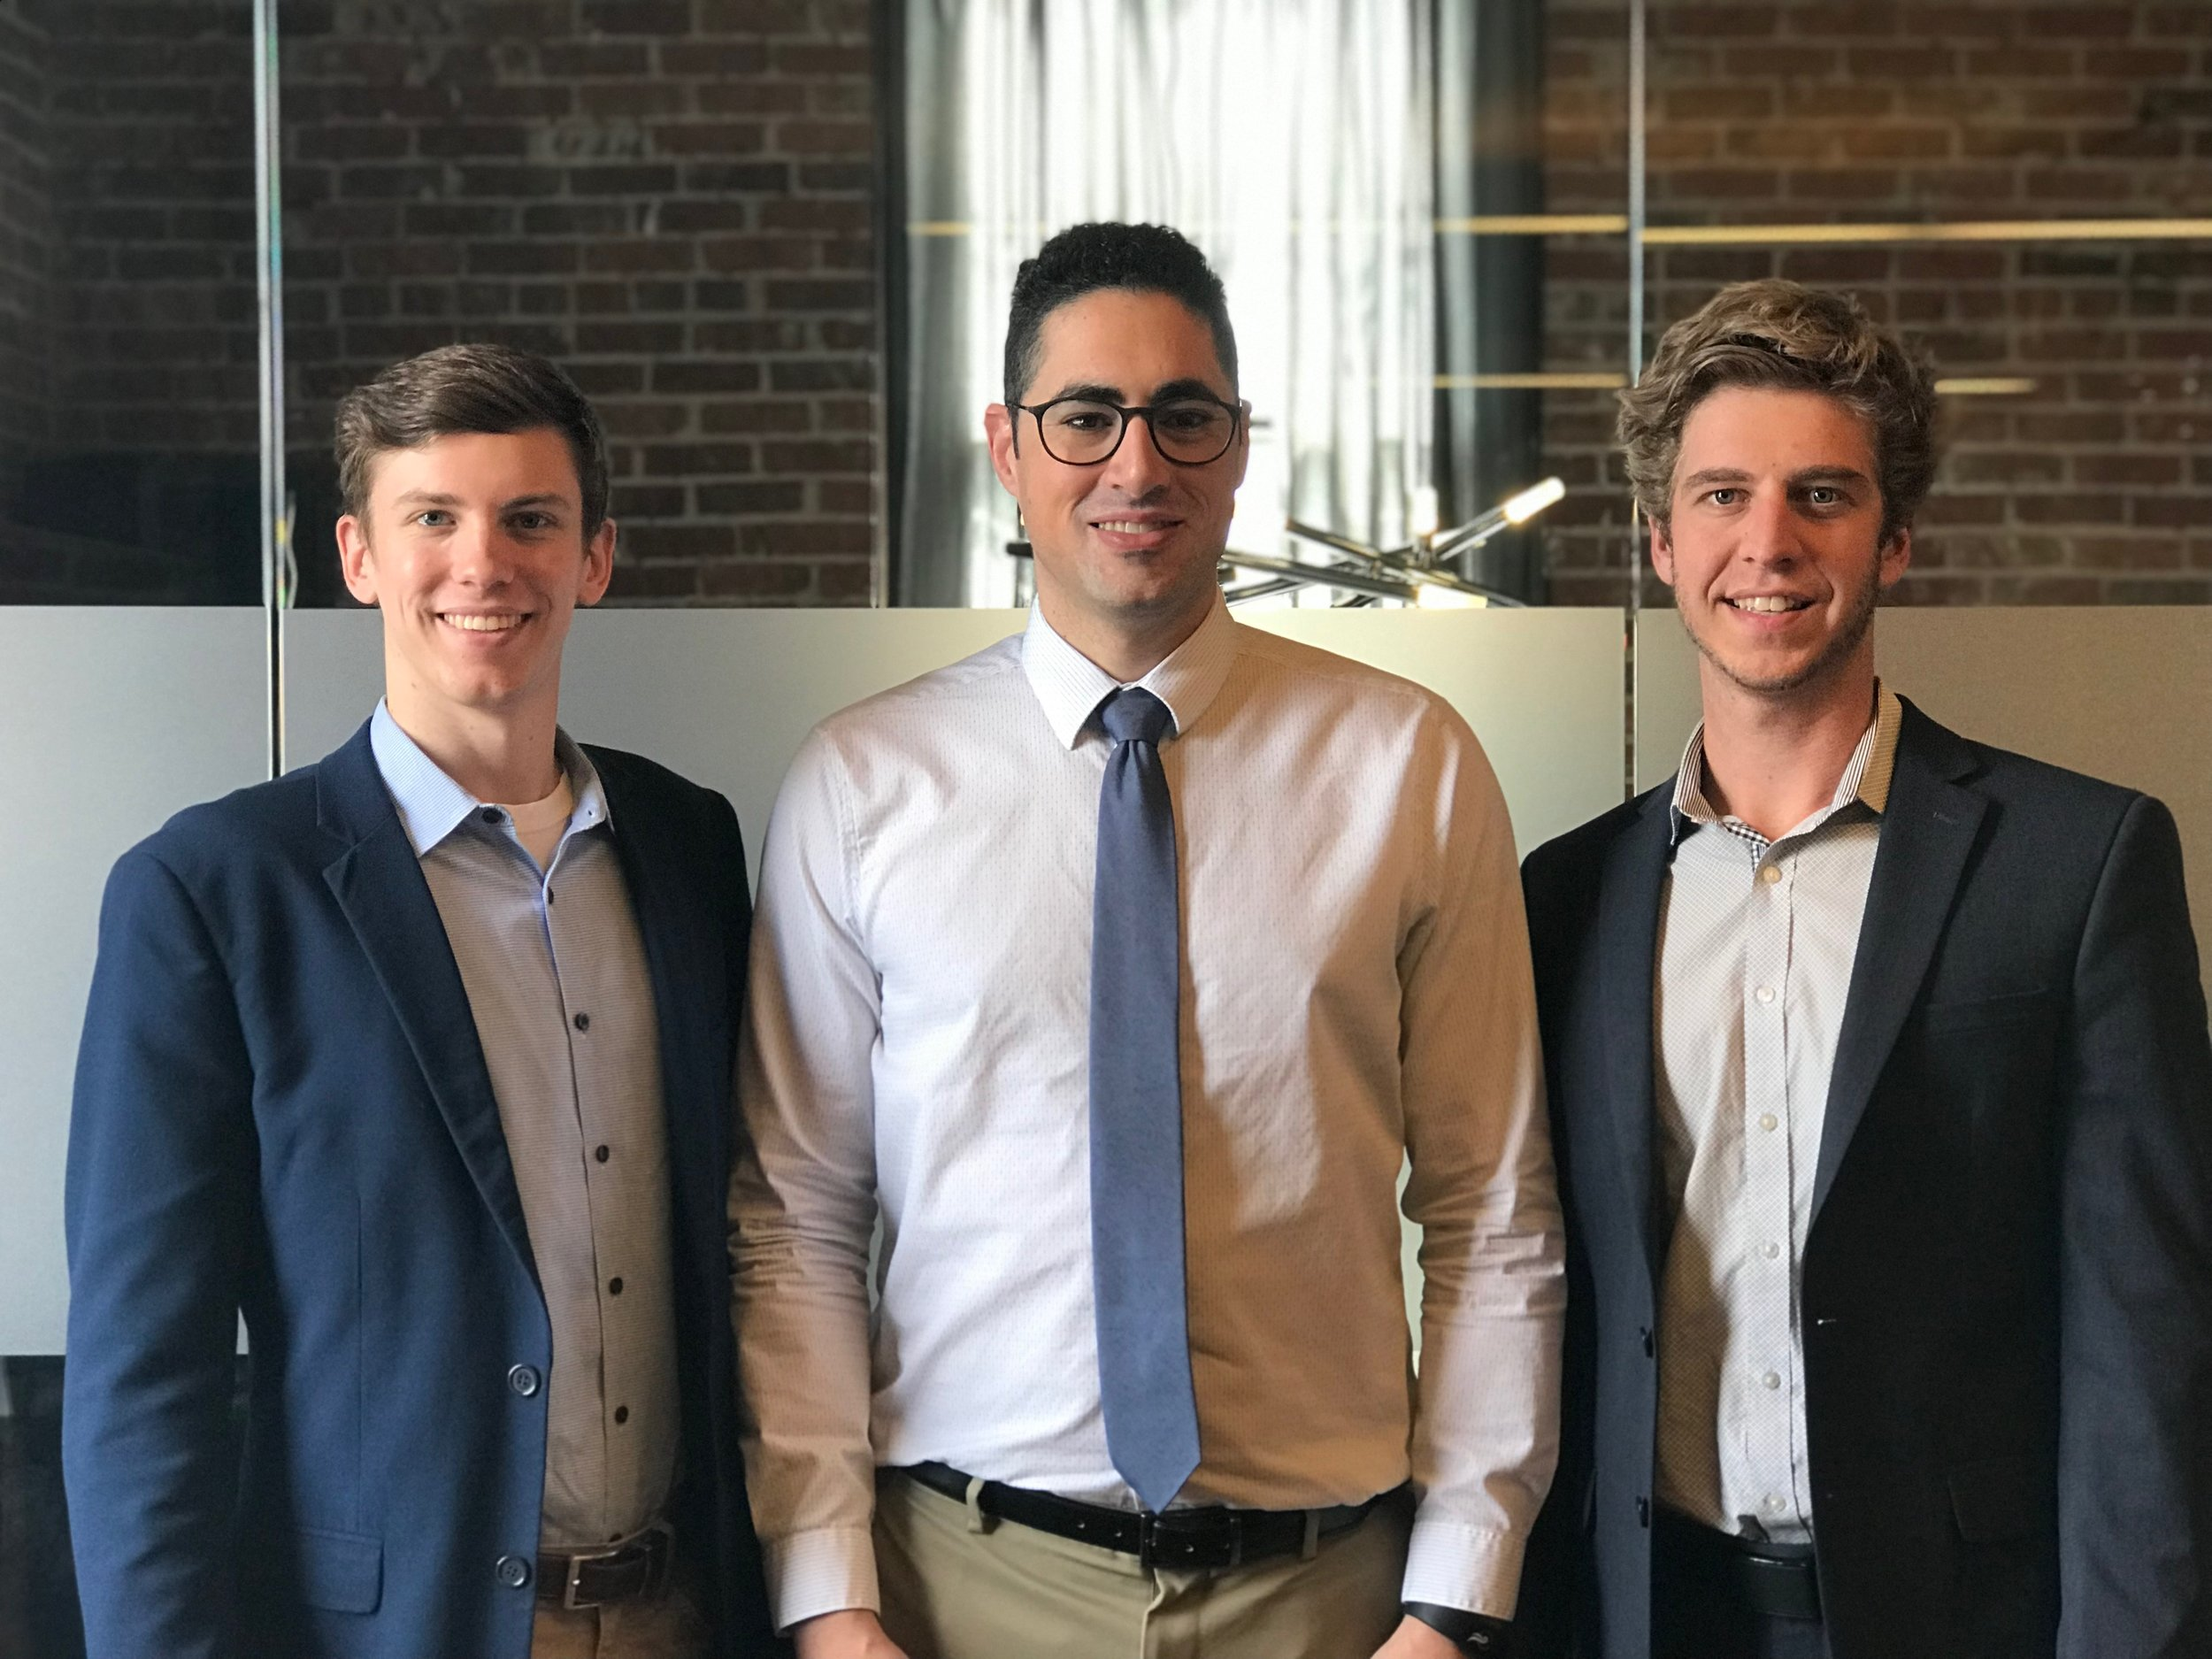 The SkyWorks team / From left to right: Barsness, Makkawy and Hawkins / Submitted